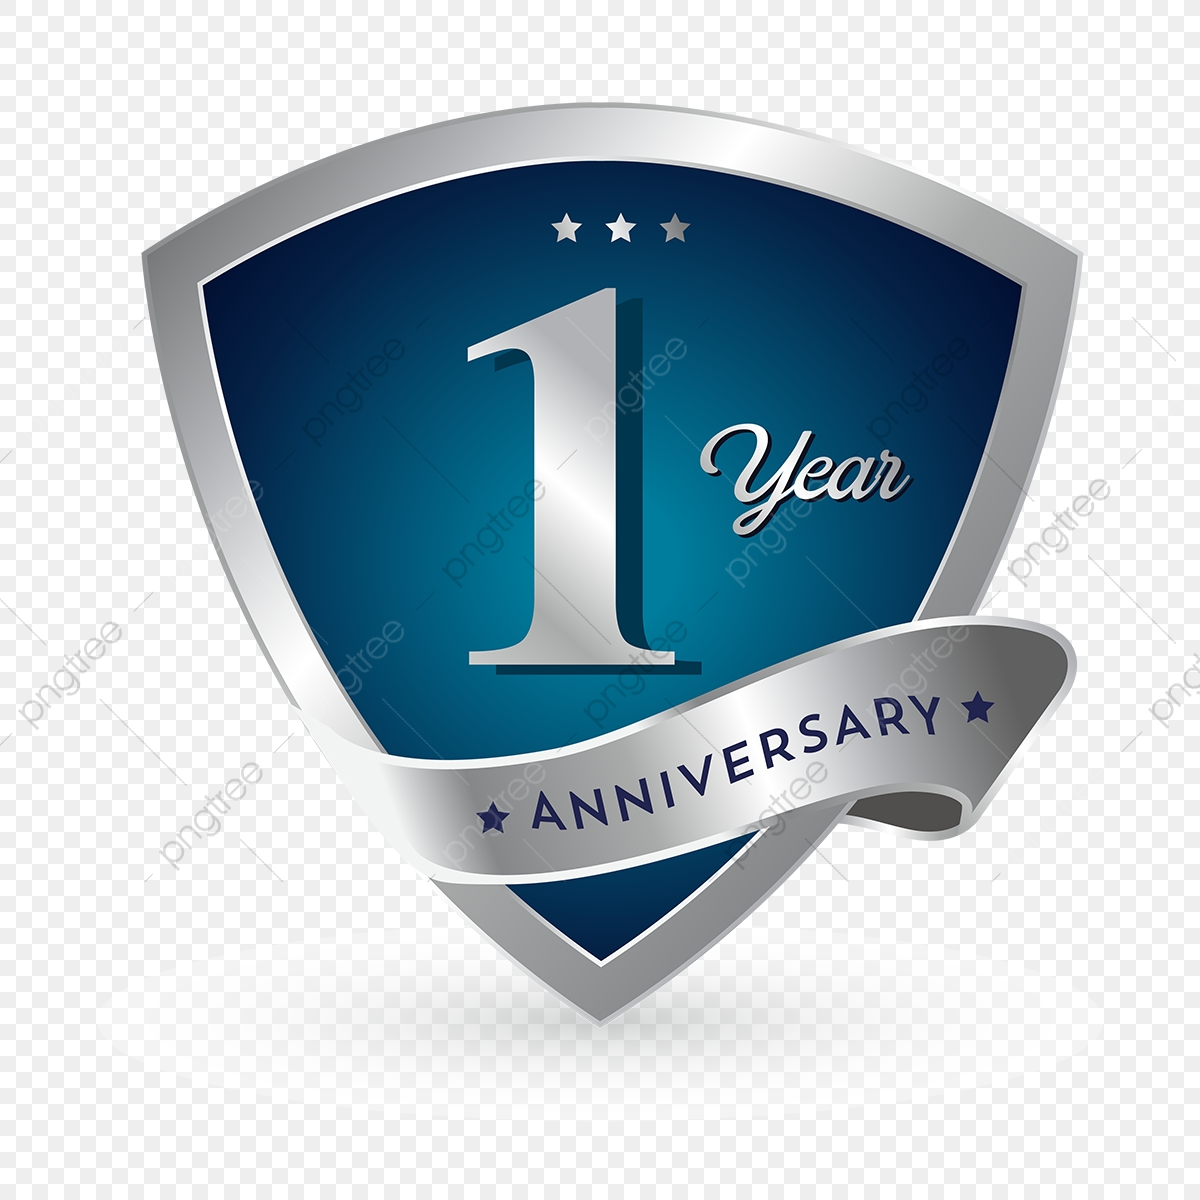 1st anniversary png images vector and psd files free download on pngtree https pngtree com freepng 1st anniversary badge logo icon 3575141 html